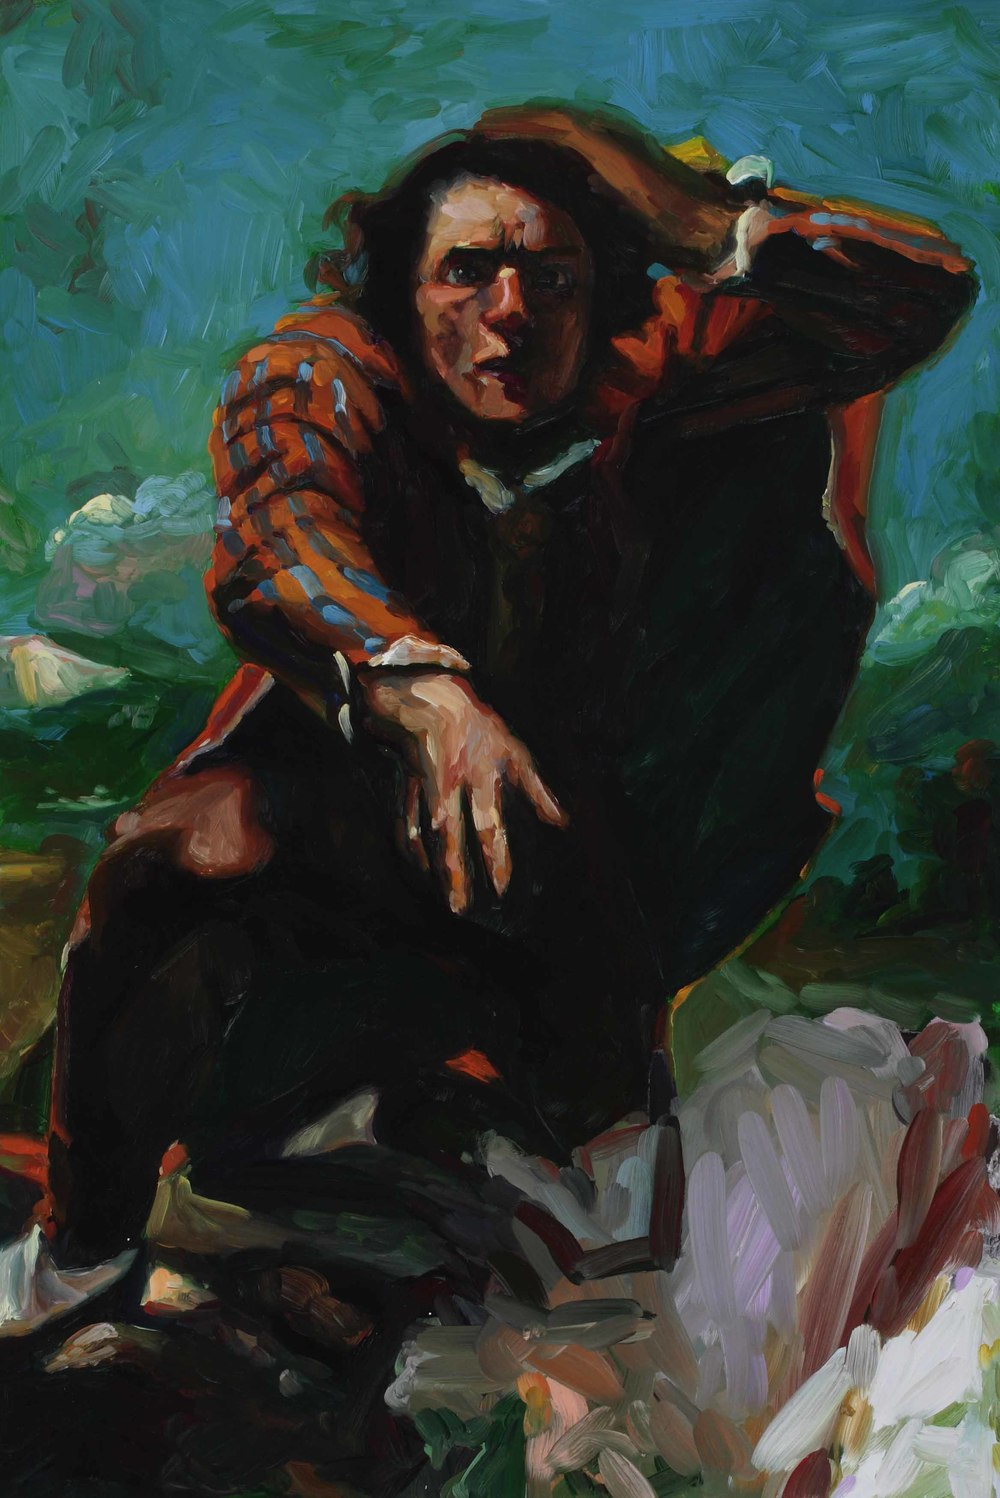 Hovering (after Courbet), oil on board, 60 x 40 cm, 2008.